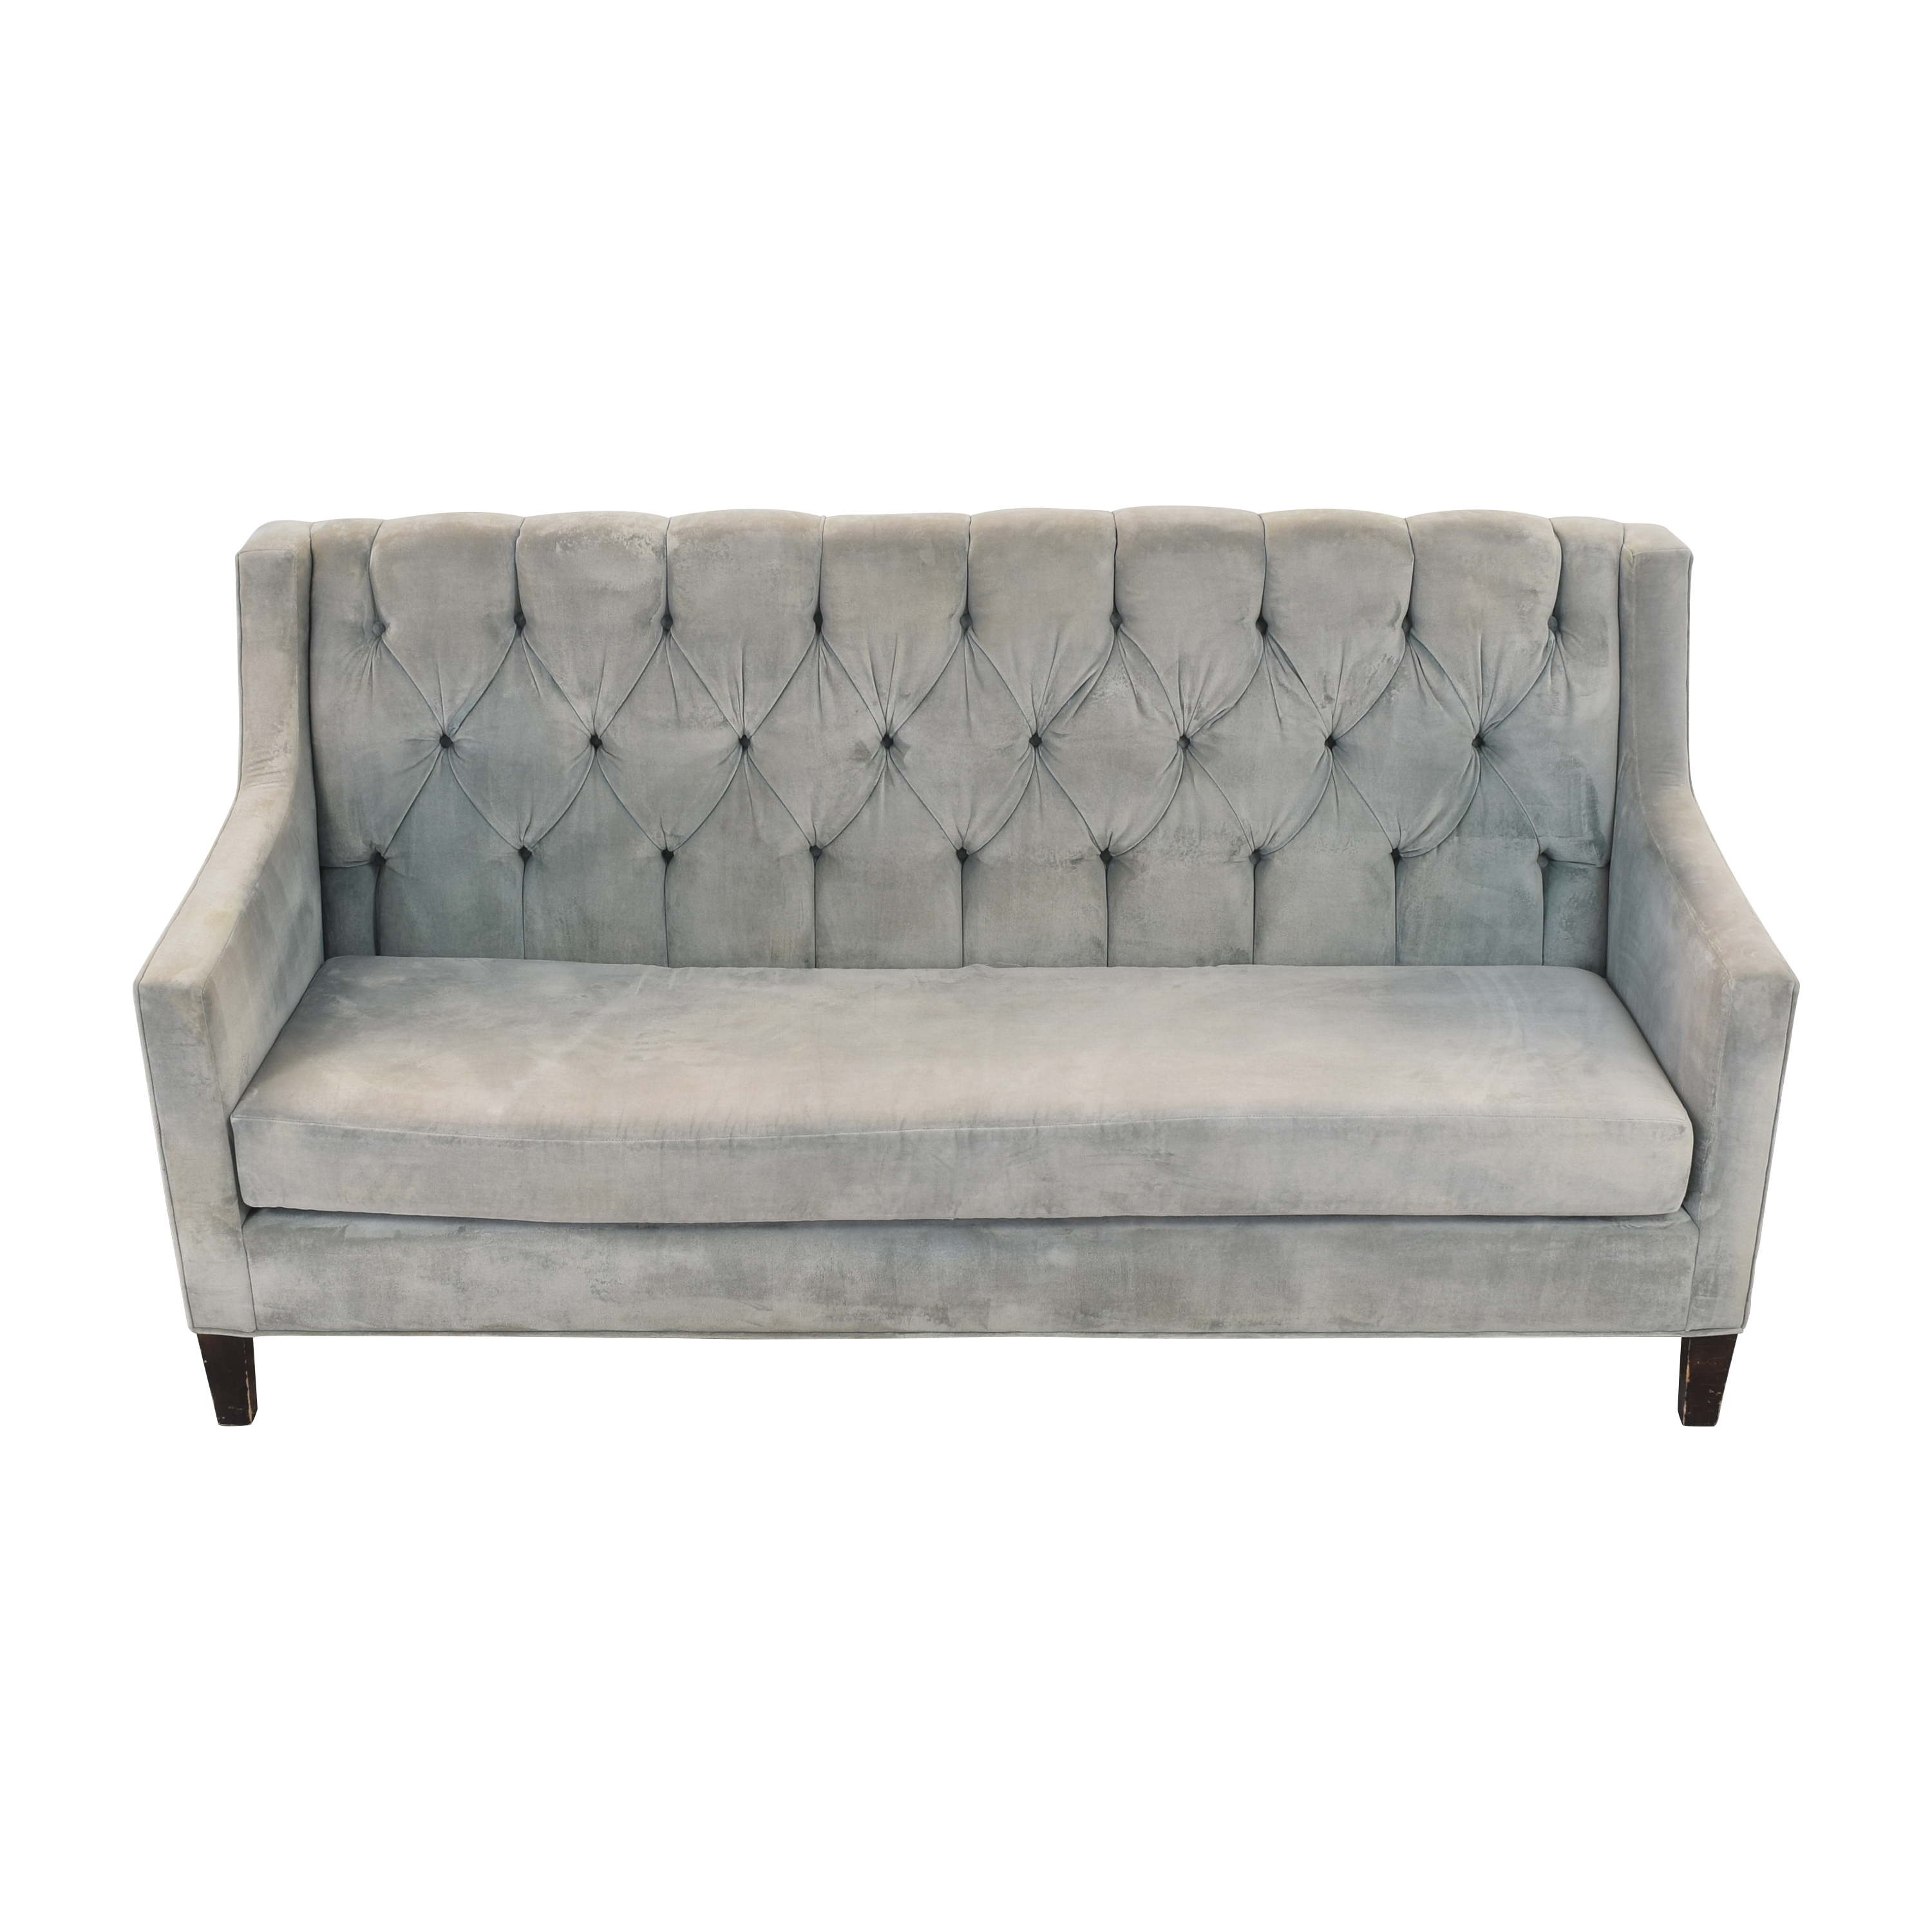 Tufted Upholstered Sofa second hand